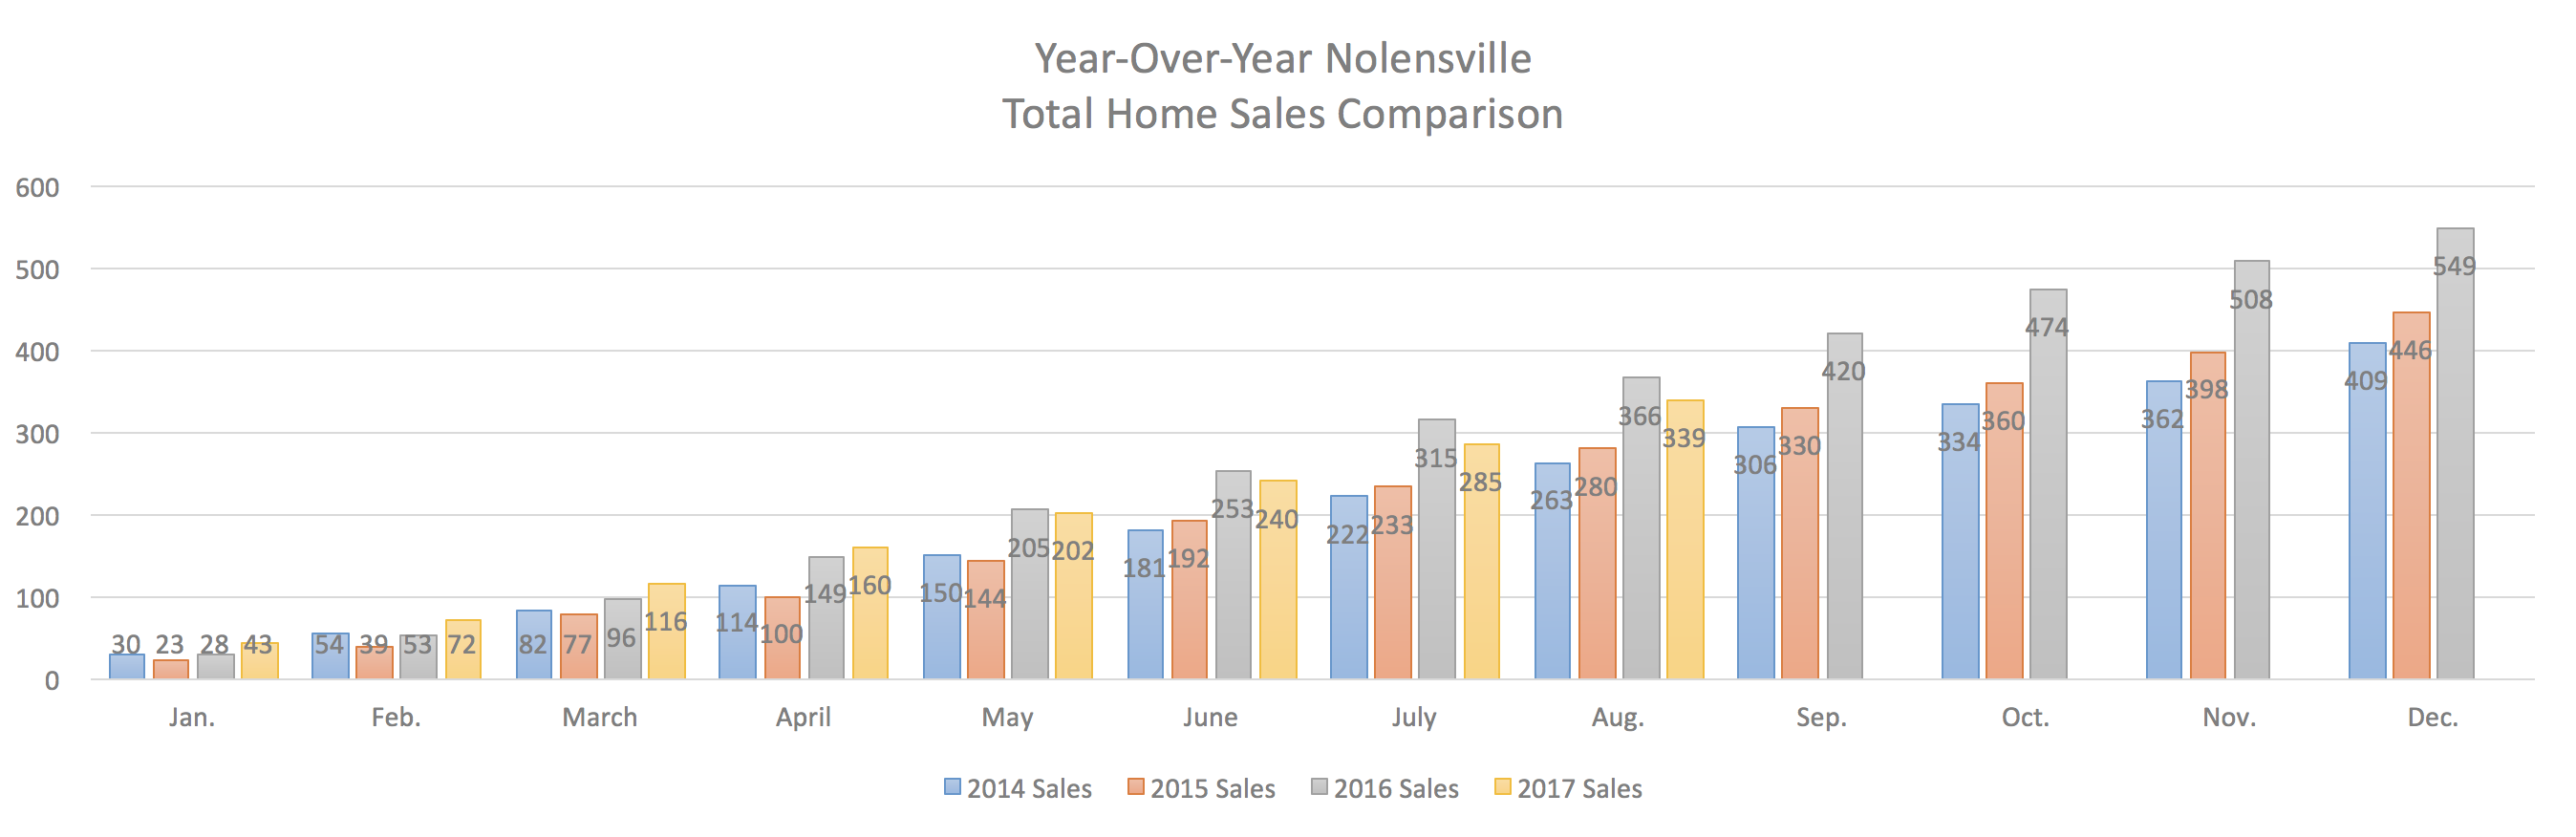 Nolensville Year-Over-Year Home Sales Through August 2017